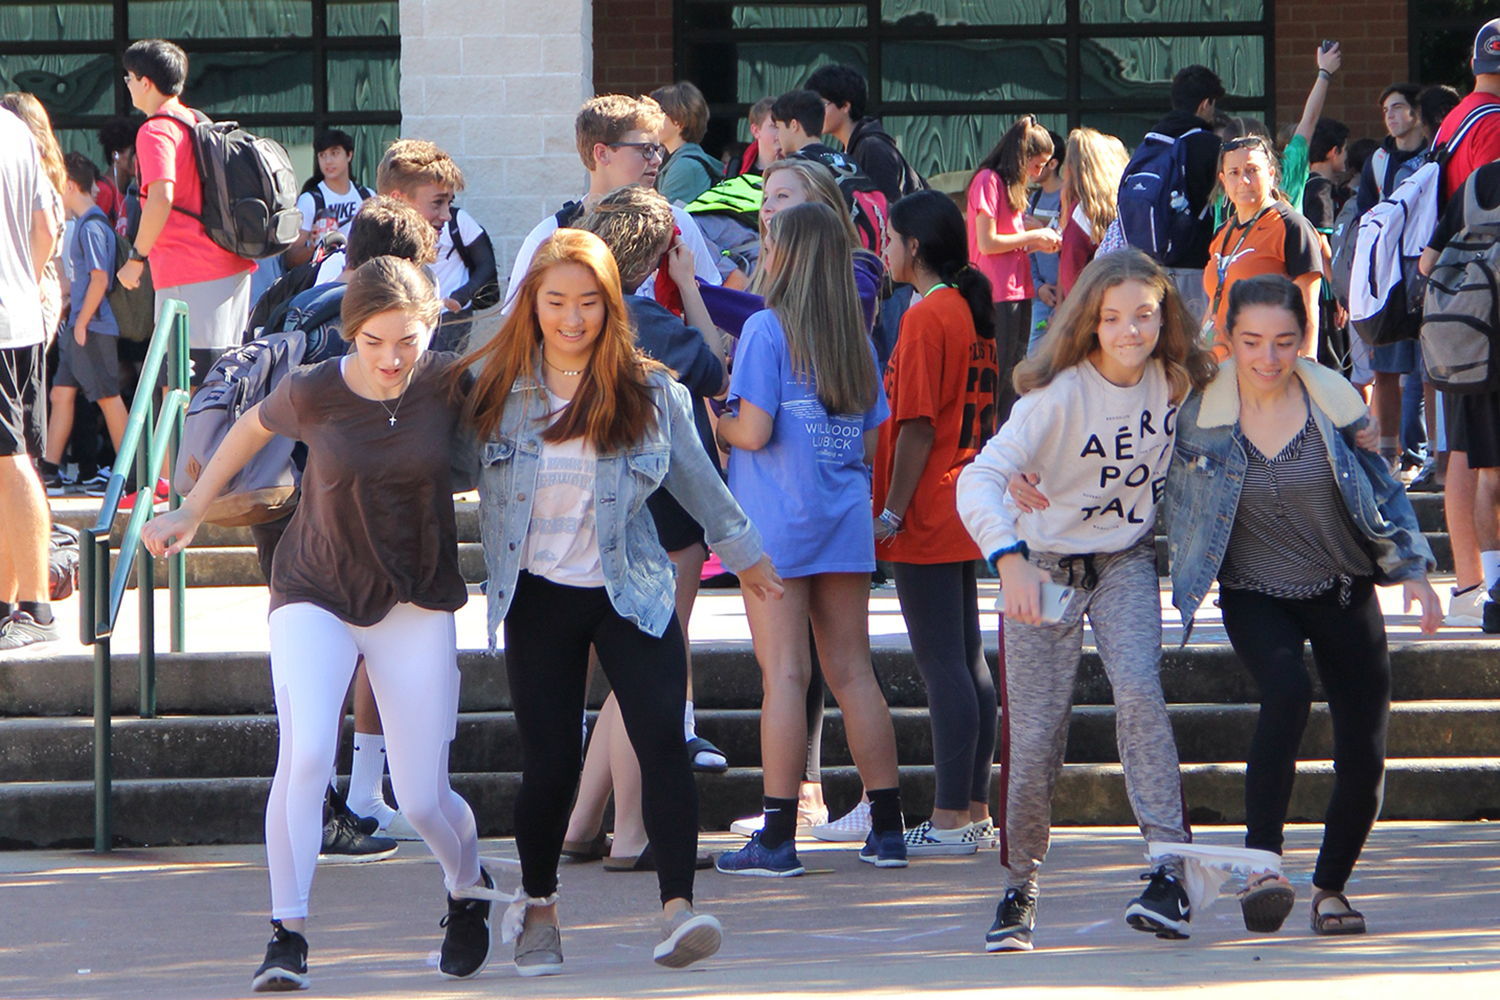 Running in a three-legged race, students participate in the Oct. 10 PACKtivity in the courtyard.